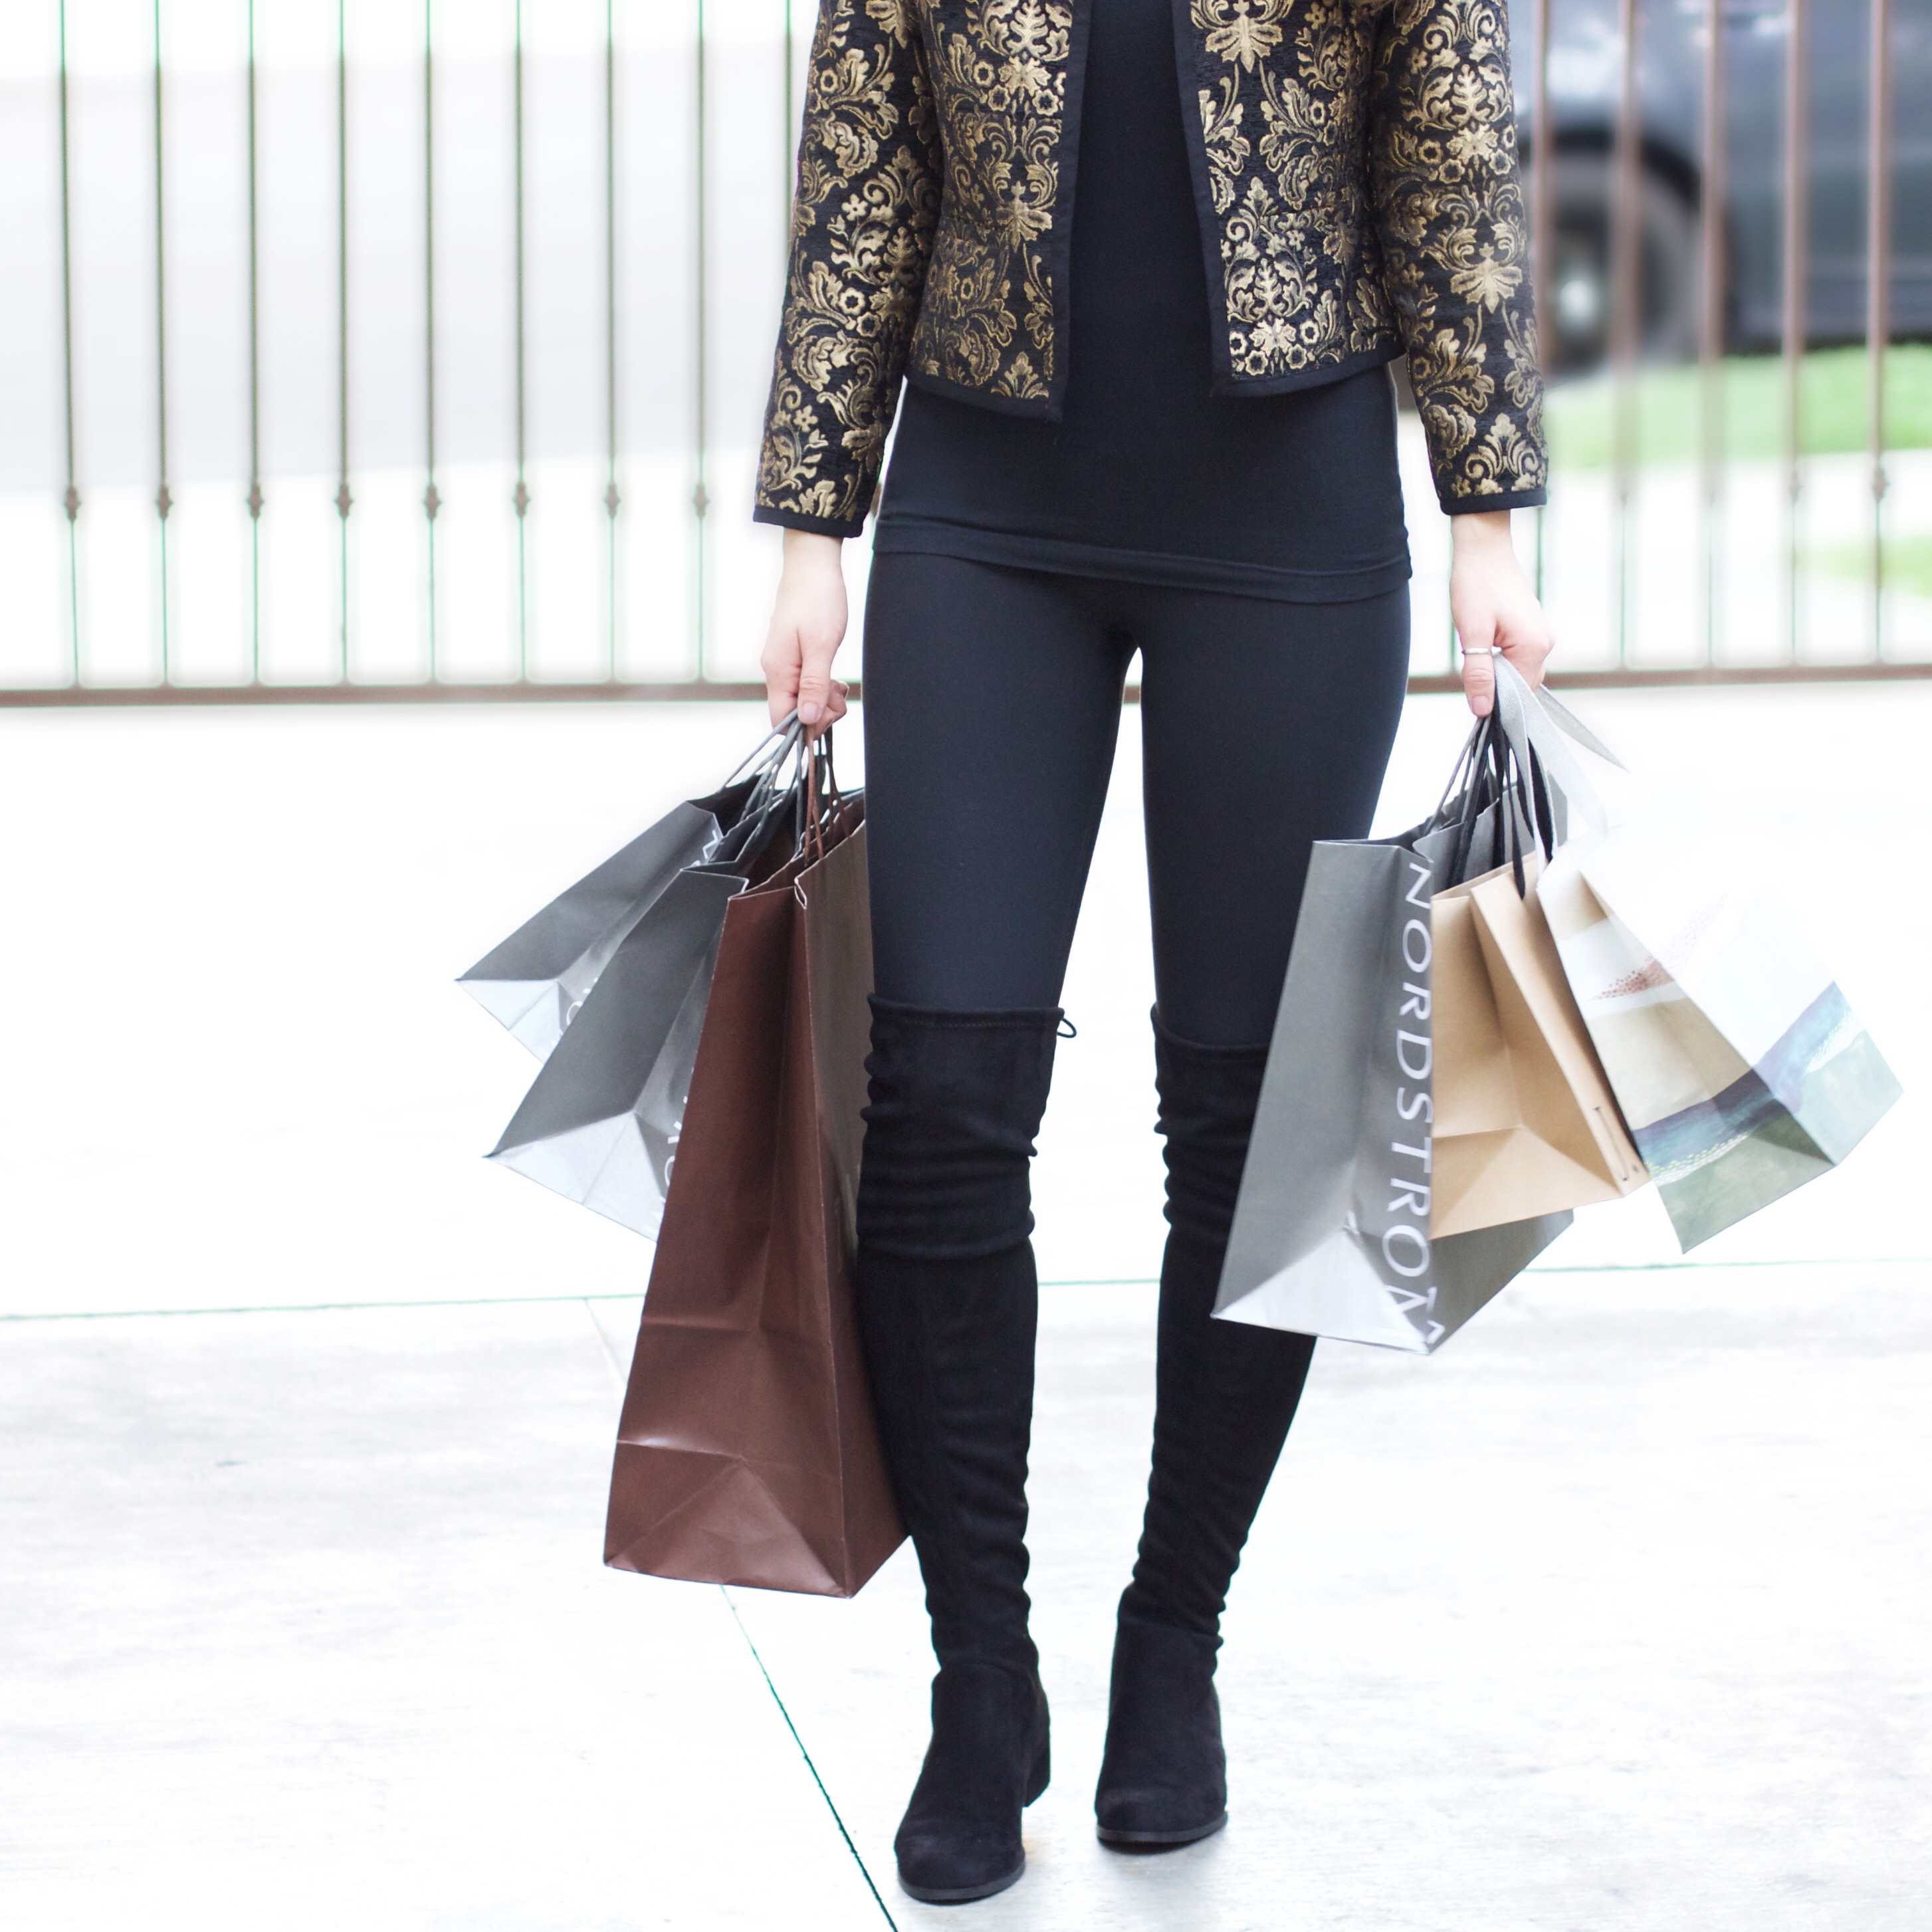 black suede over the knee boots with tie under $100